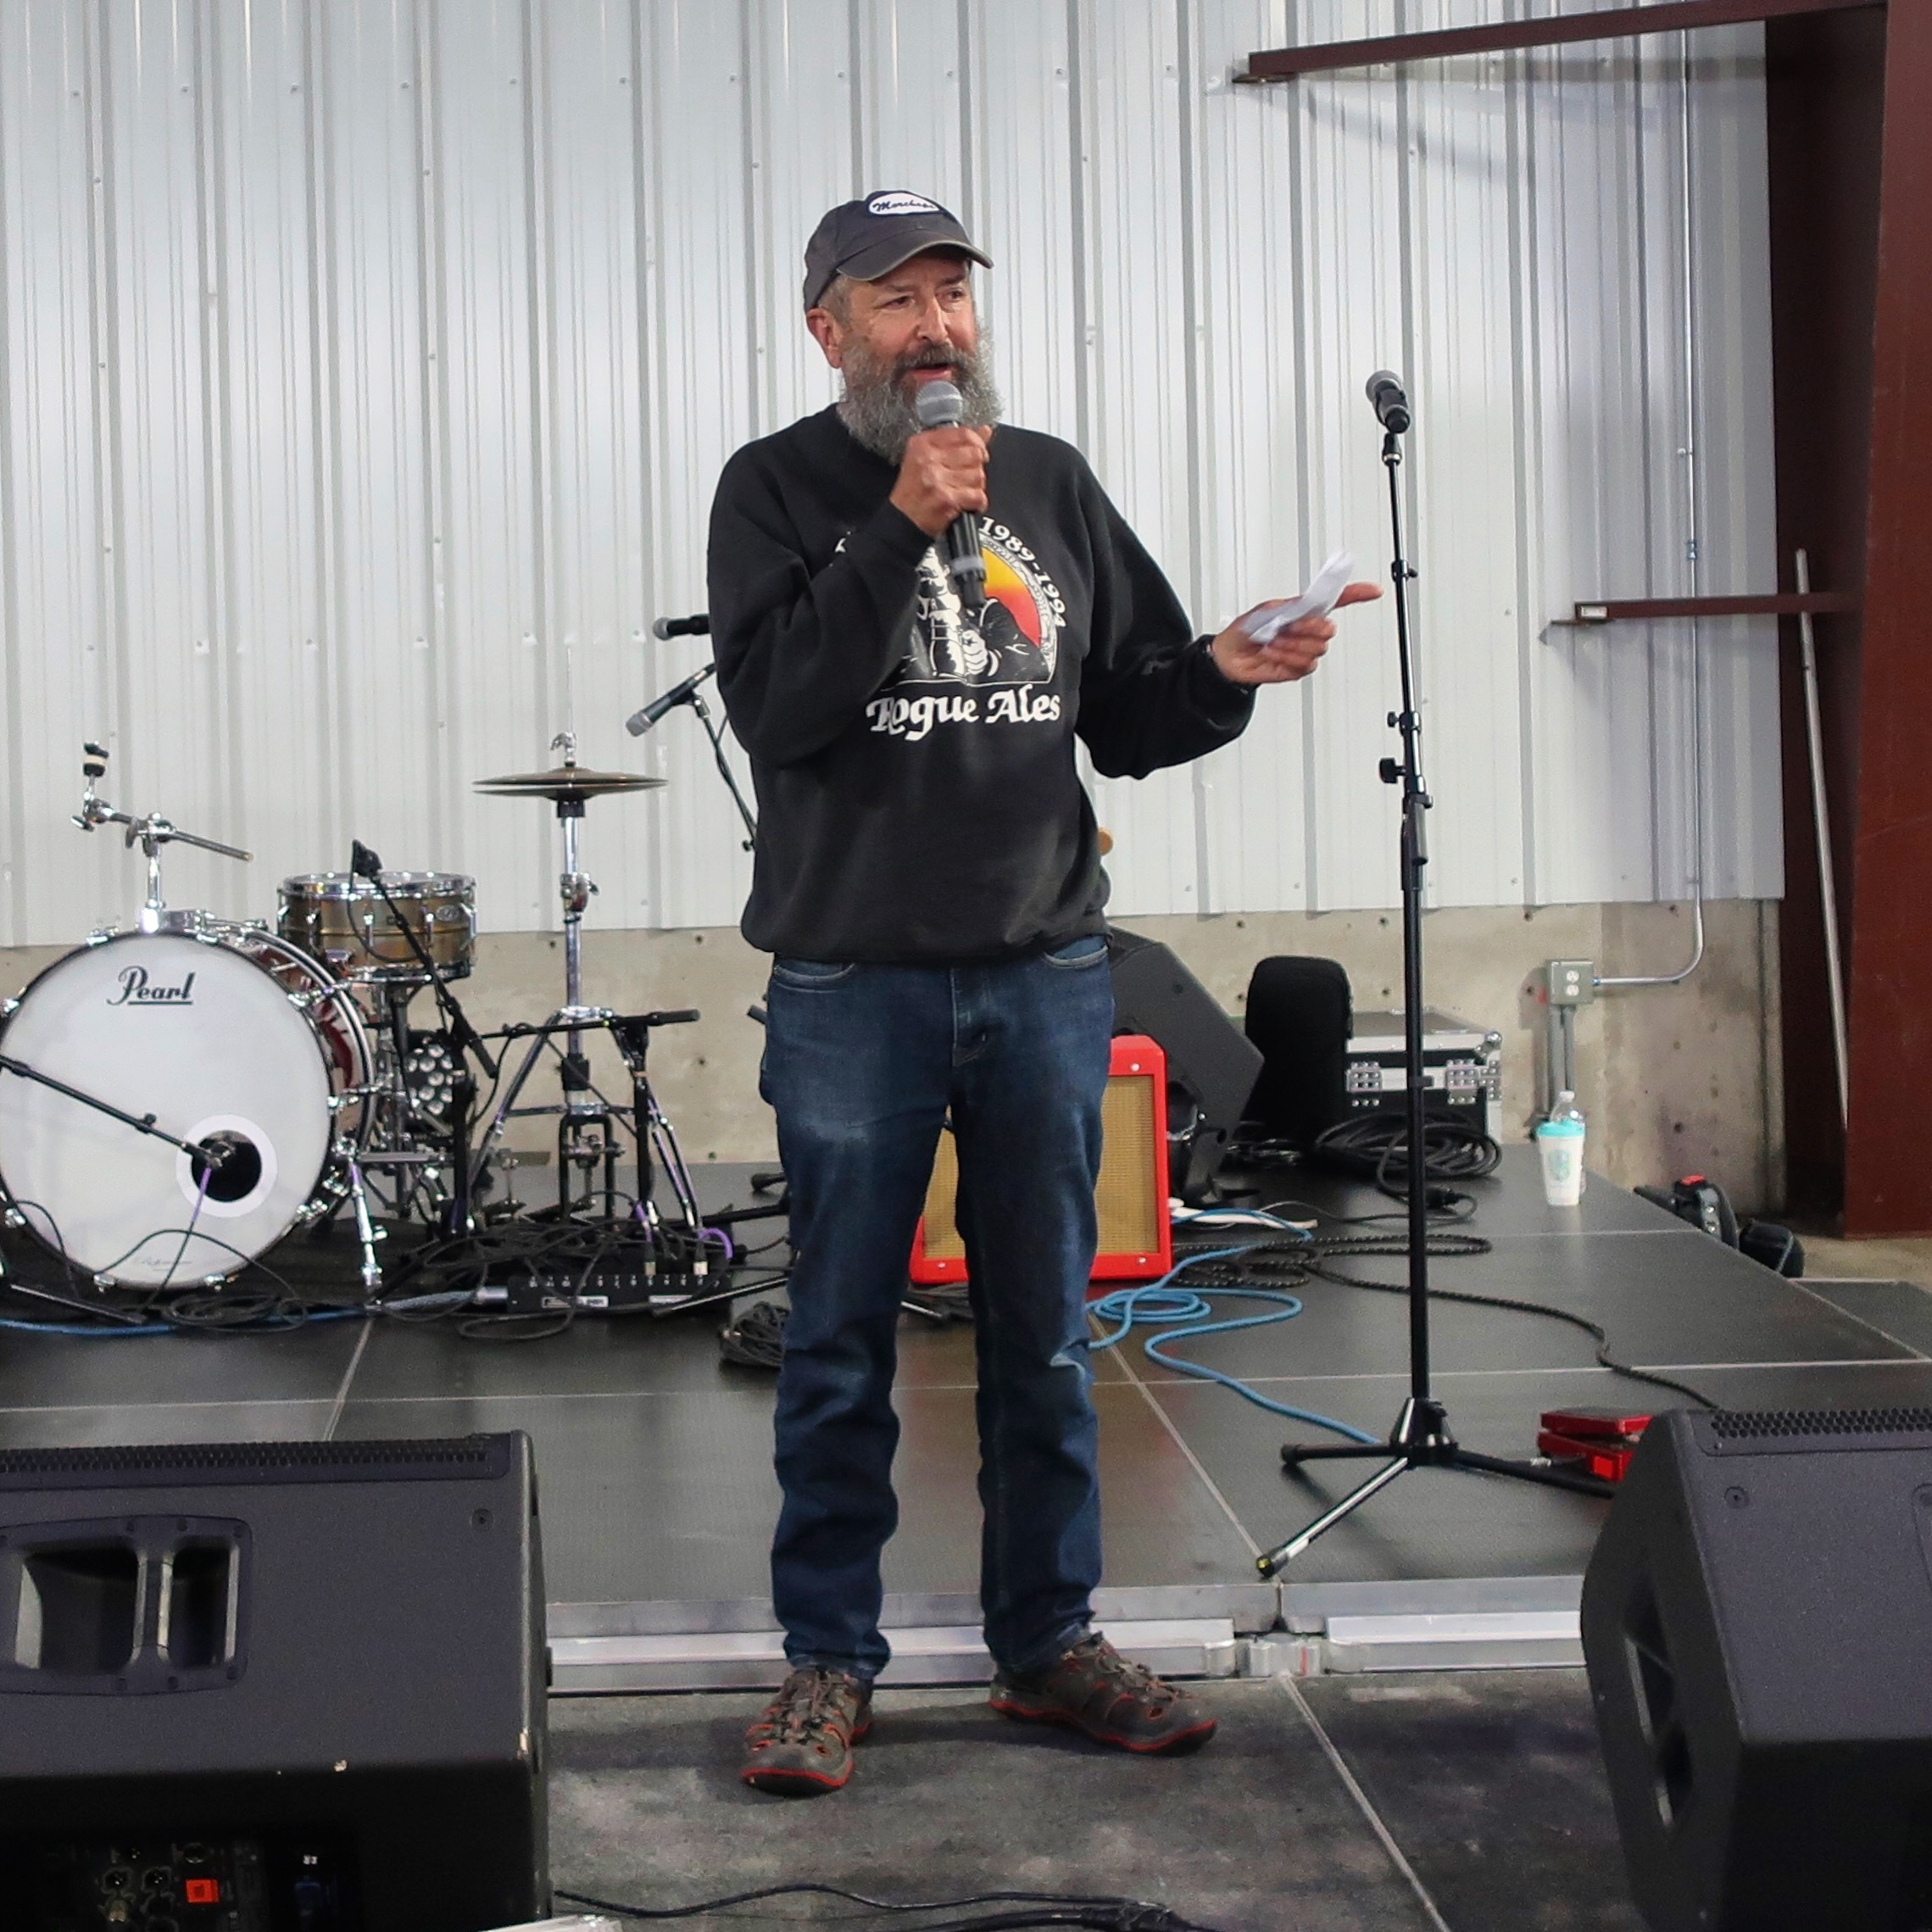 John Maier revealing that he will be retiring from Rogue Ales on July 27, 2019.